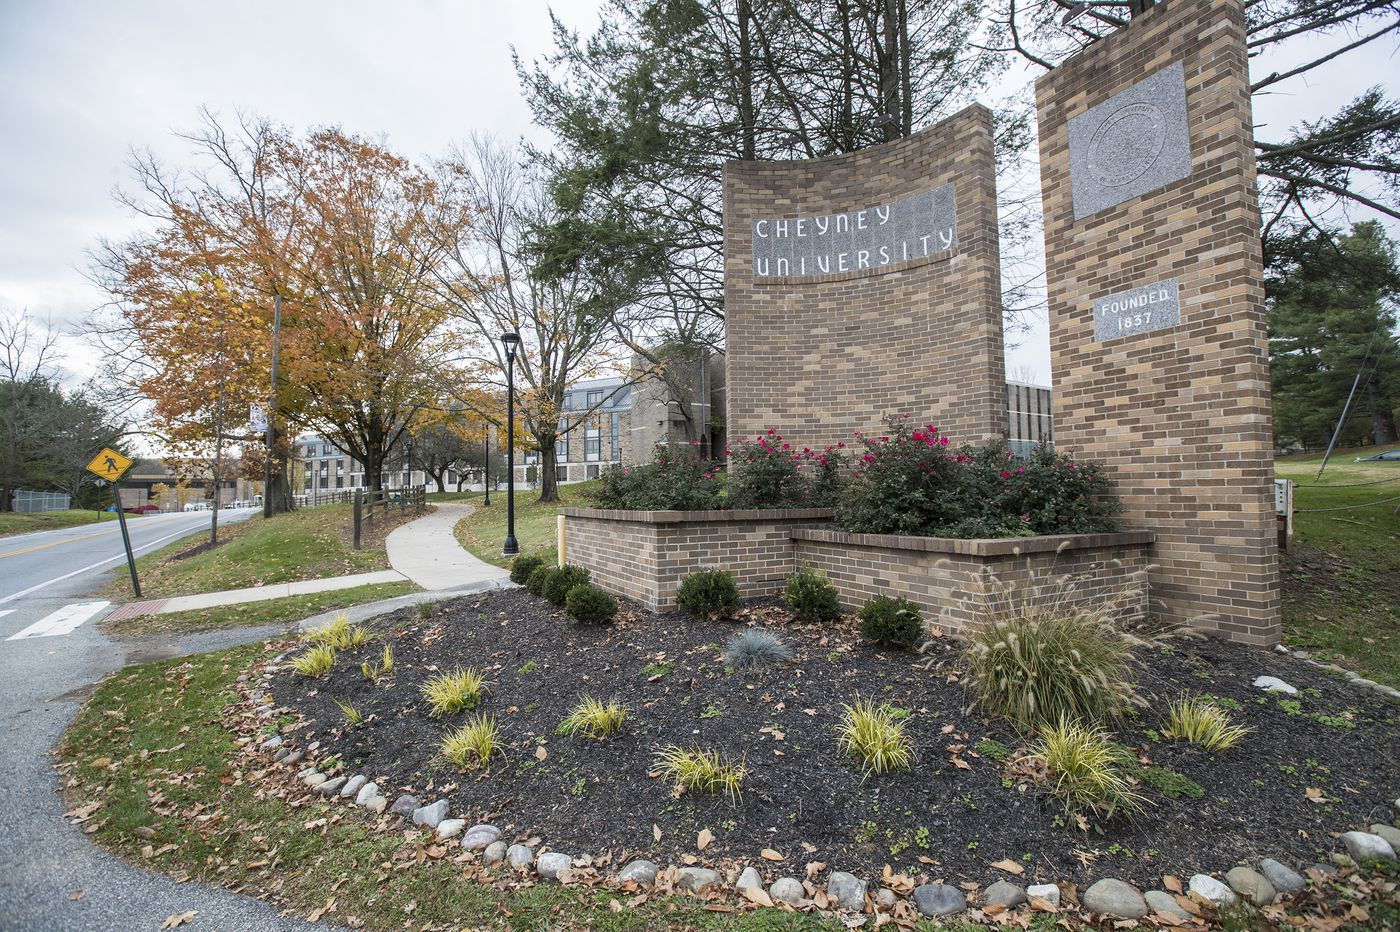 Cheyney enrollment plummets amid broader decline at Pa. state universities